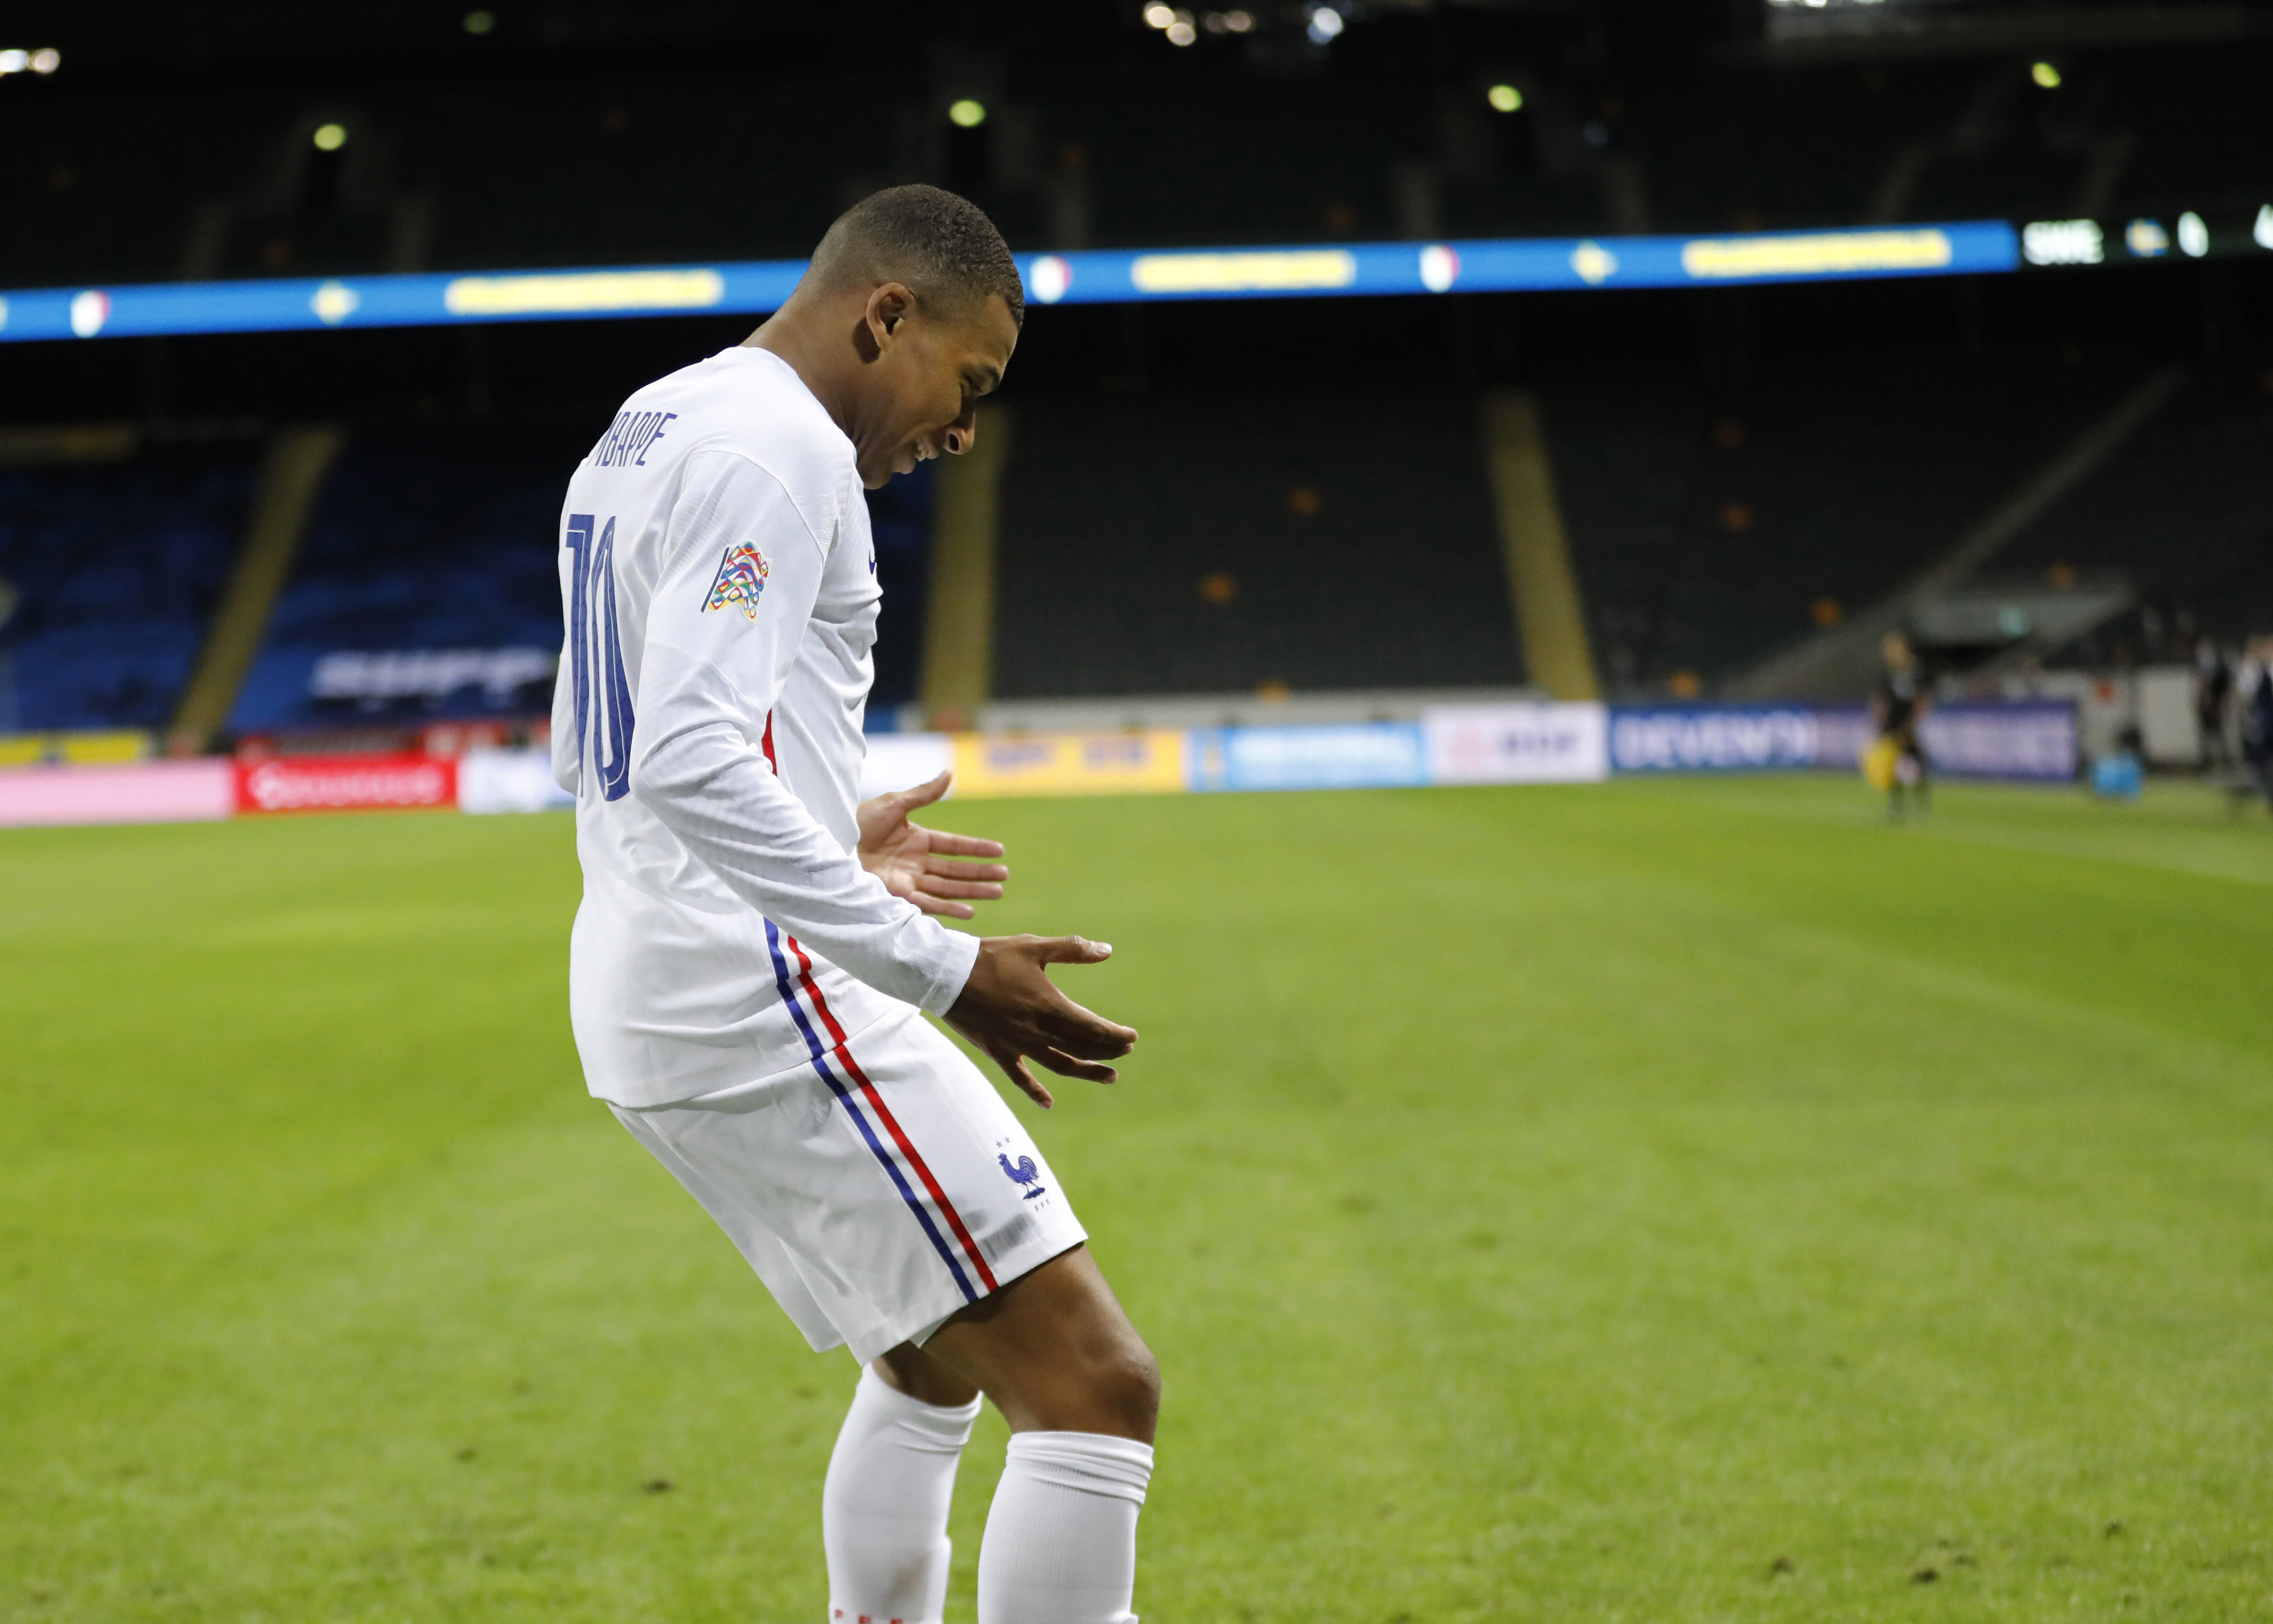 France's Kylian Mbappe celebrates his goal during the UEFA Nations League soccer match between Sweden and France at Friends Arena, Saturday, Sept. 5, 2020, in Stockholm, Sweden. (Christine Olsson/TT via AP)